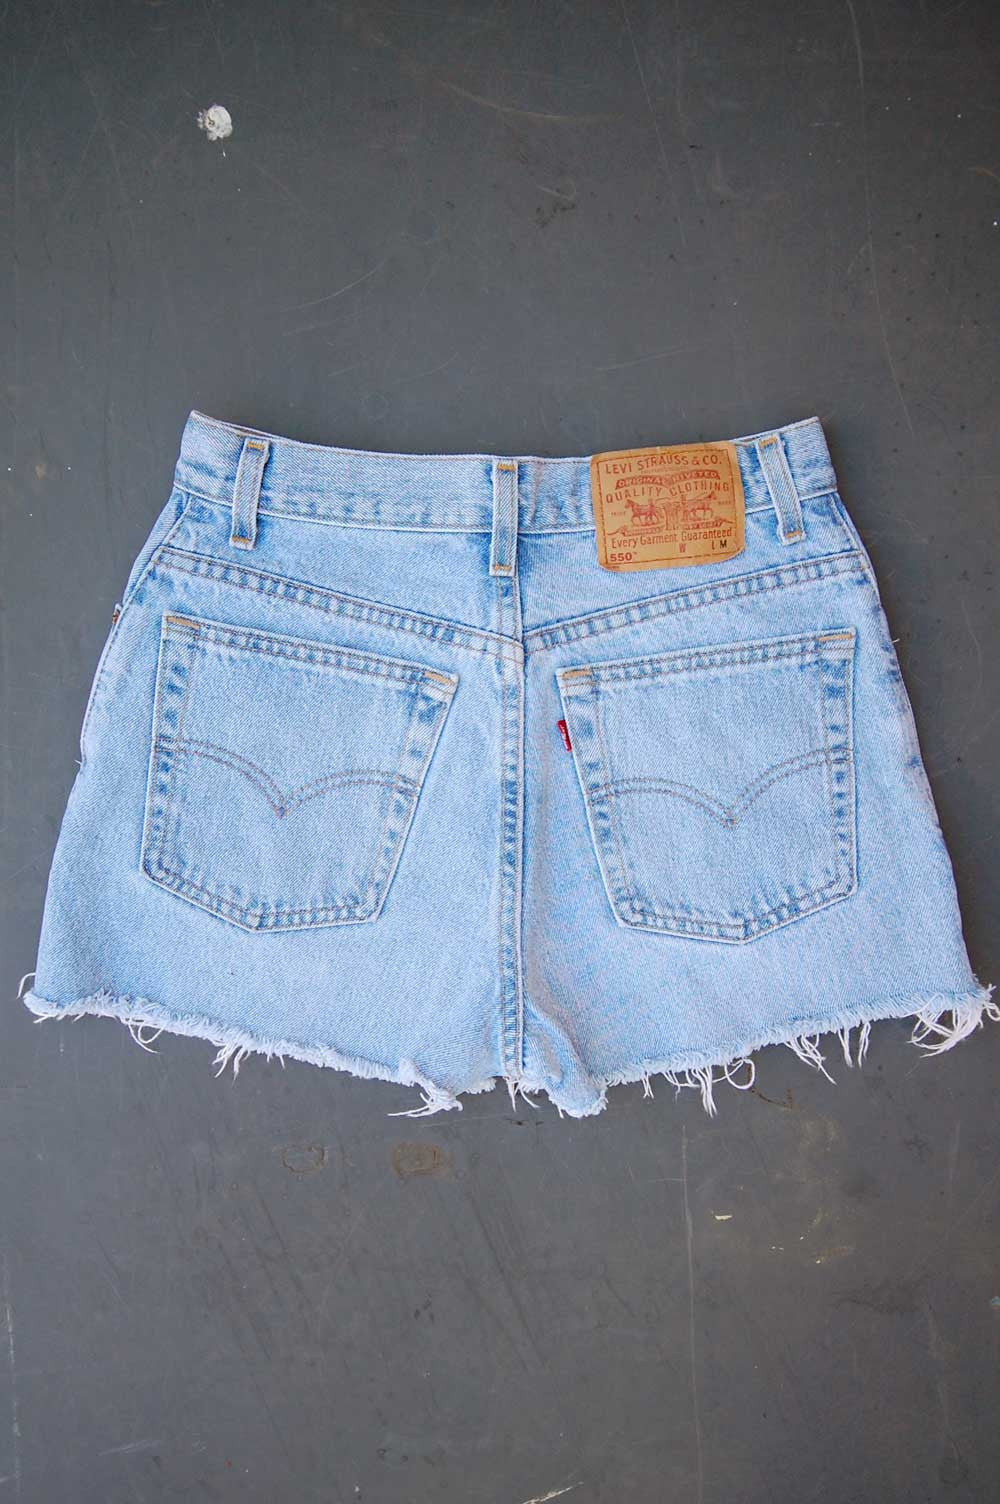 Vintage Levi's 505 USA Chain-Stitched Hearts & Music Note Cutoff Denim Shorts